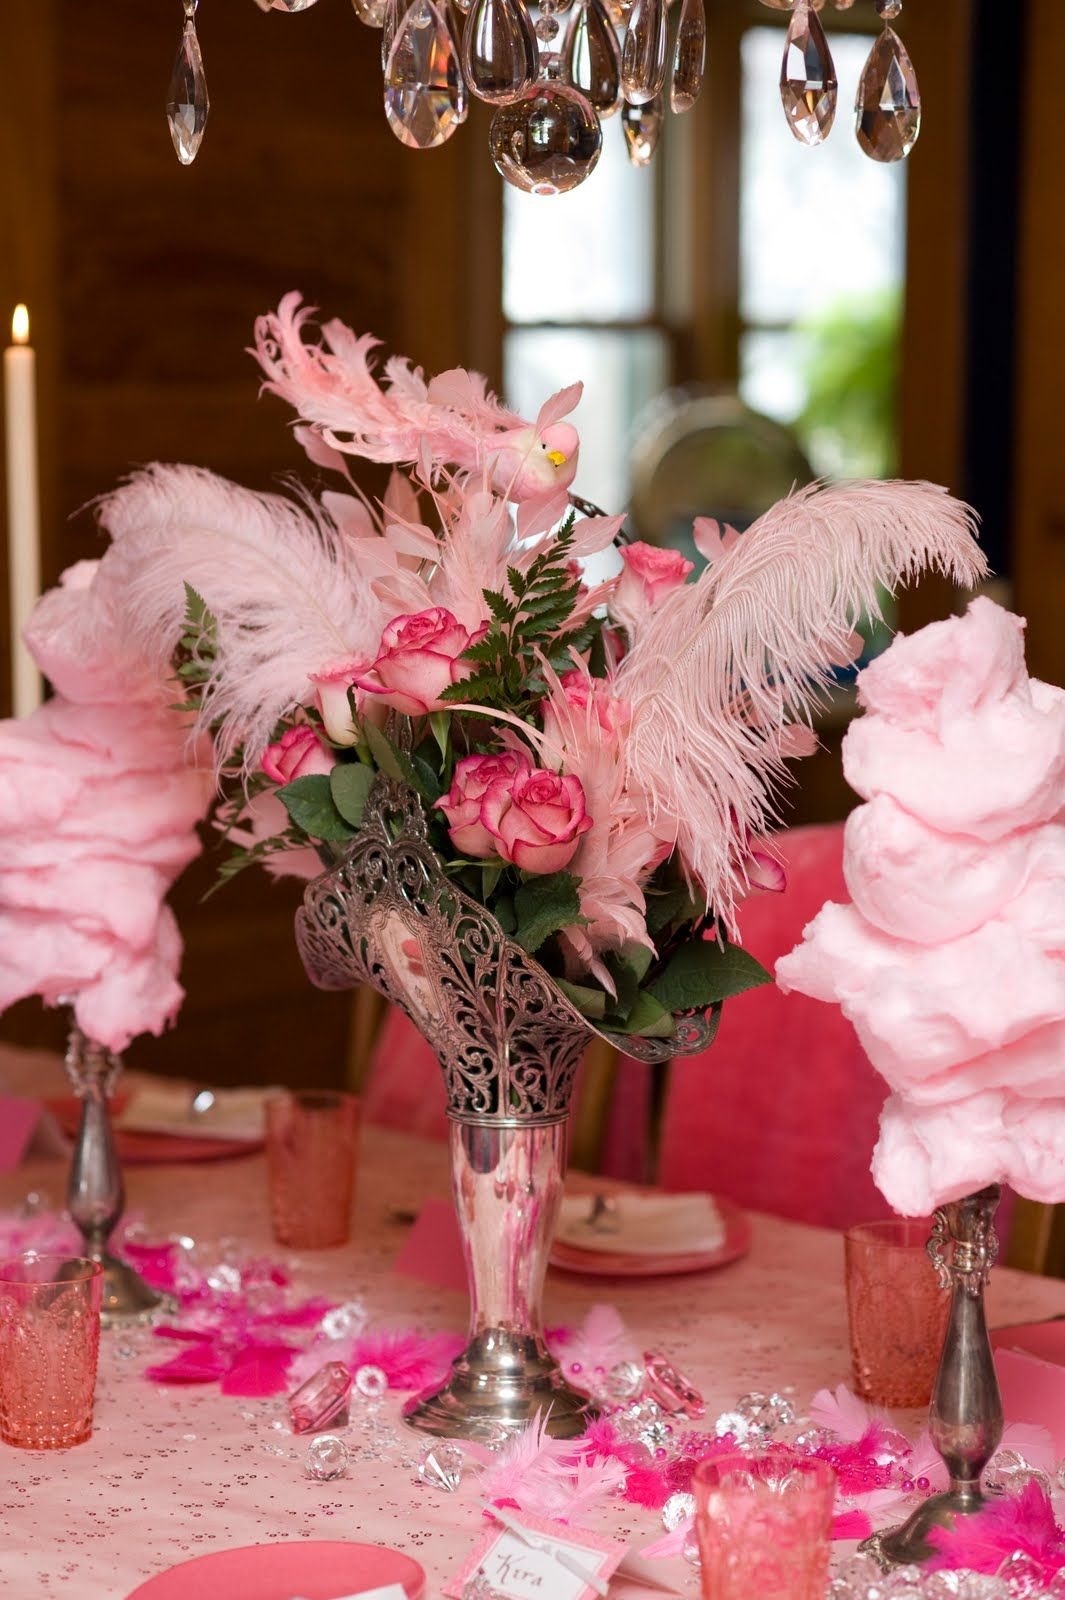 Flowers Amp Feathers Centerpiece And Cotton Candy Towers